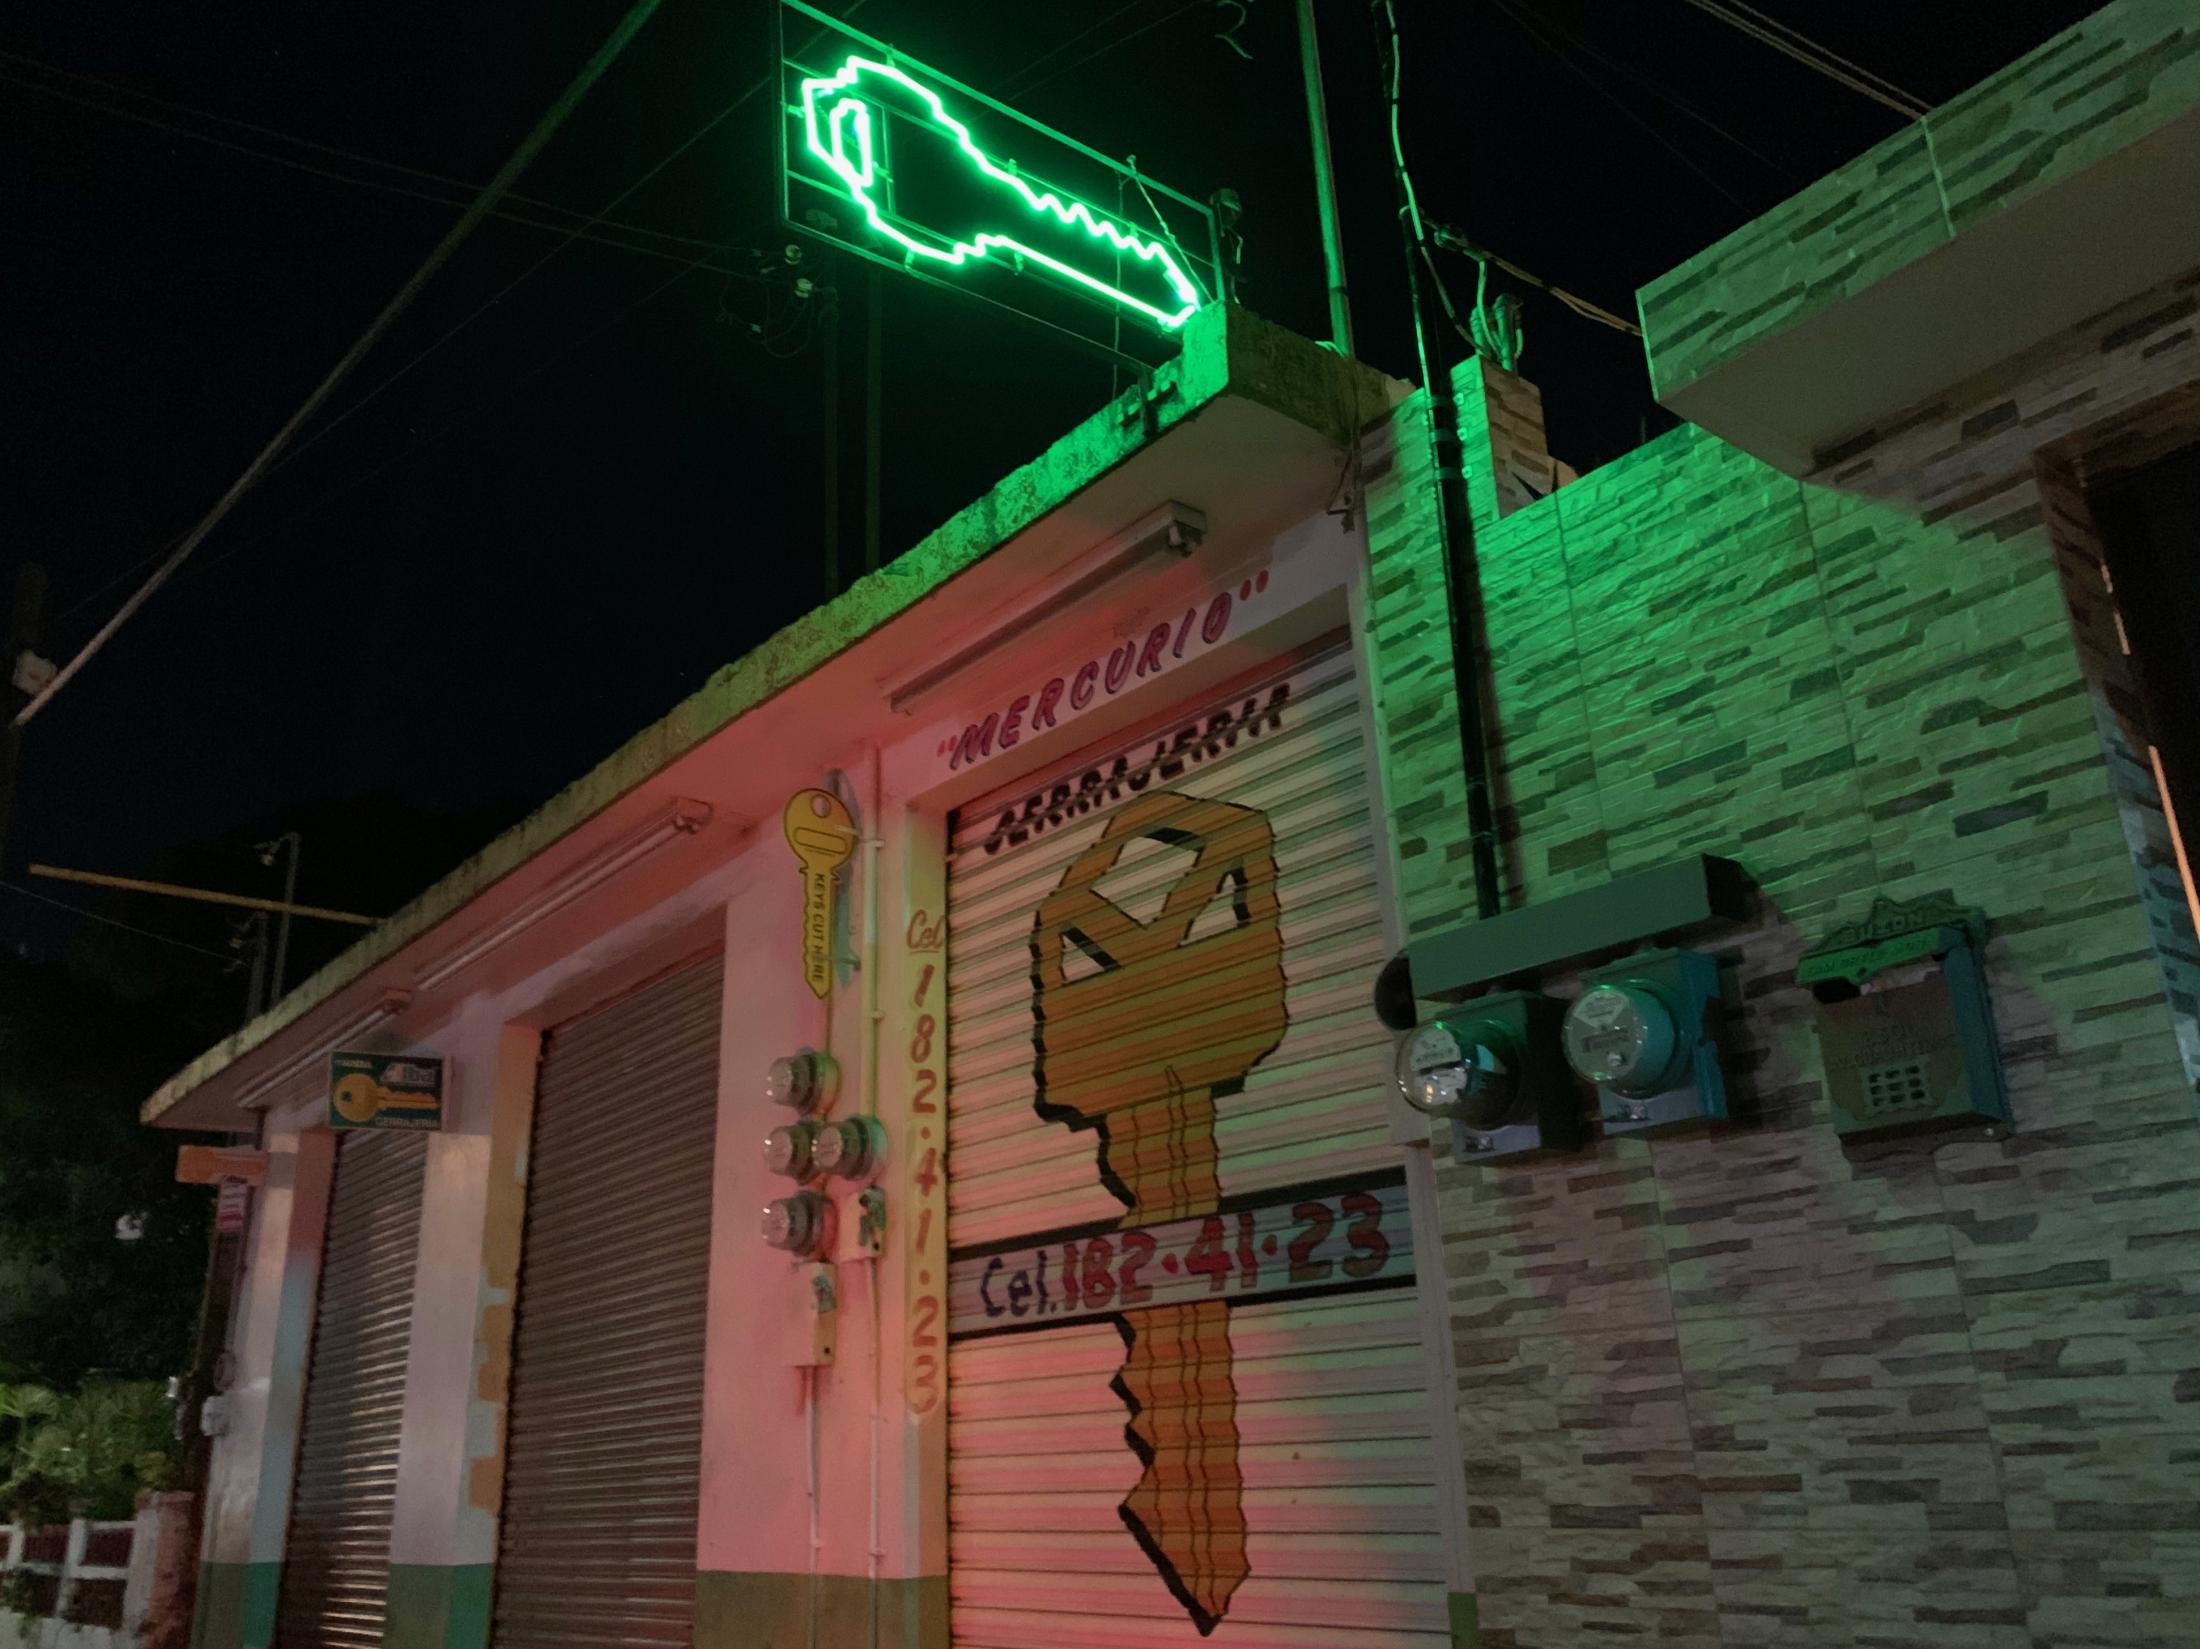 Tampico, Tamaulipas México. 2019. A locksmith business closed at night with bright neon sign in the shape of a key. I was on my home from a restaurant.